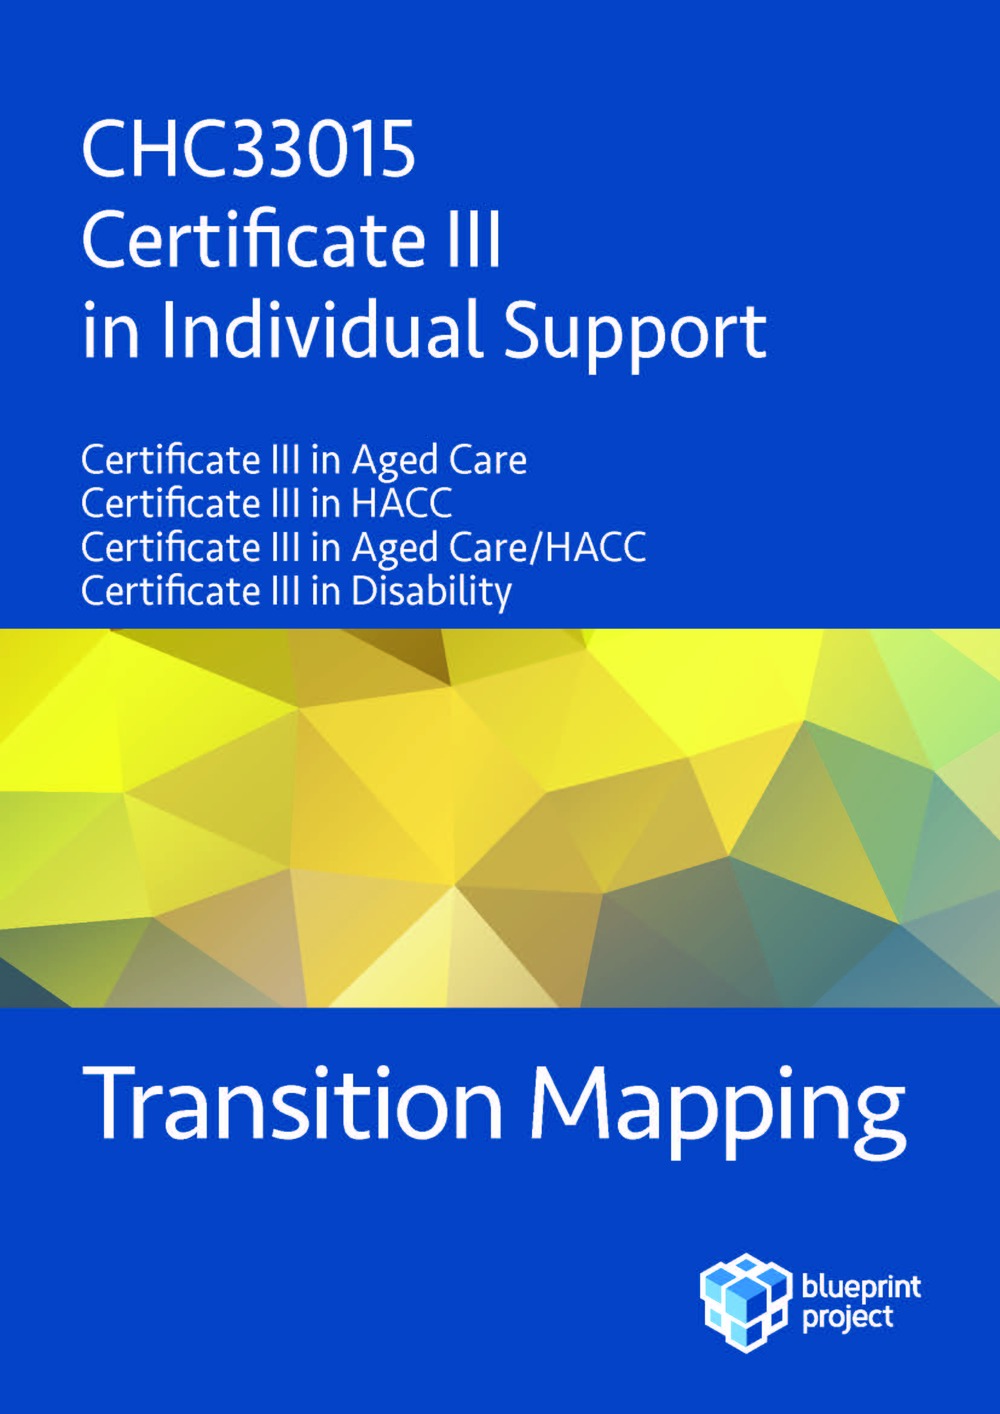 certificate iii in aged care Itfe's certificate iii in individual support and a certificate iv in ageing support are sought-after qualifications in the aged care industry, with career outcomes including personal care attendant, nursing assistant, community support/care officer, and more.